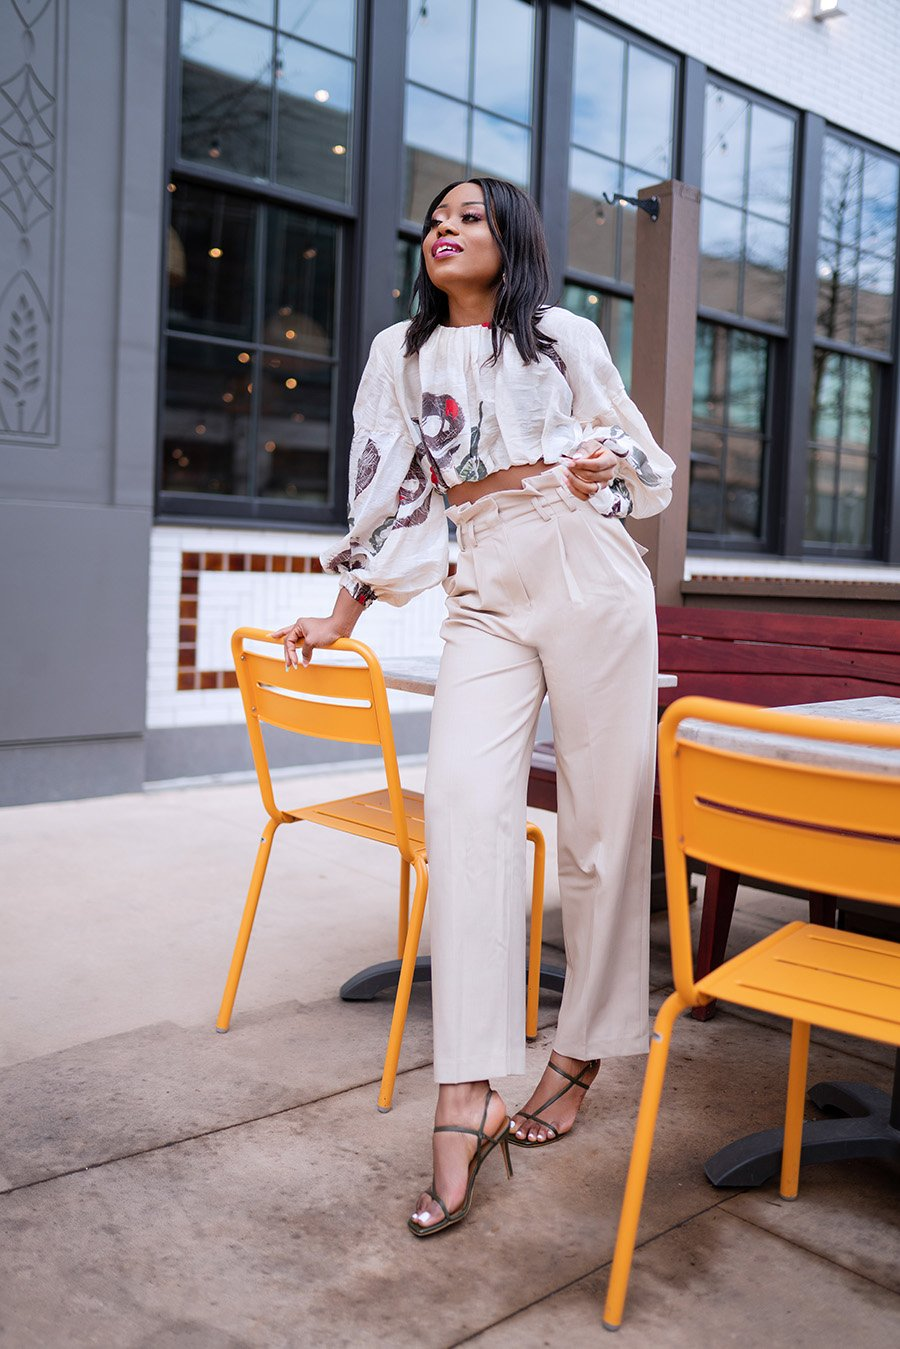 stella-adewunmi-of-jadore-fashion-blog-shares-the-best-statement-tops-for-any-occasion